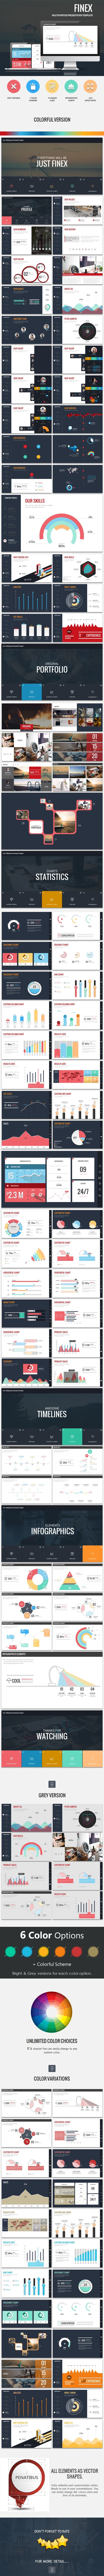 Finex - Multipurpose Powerpoint Template - Business PowerPoint Templates